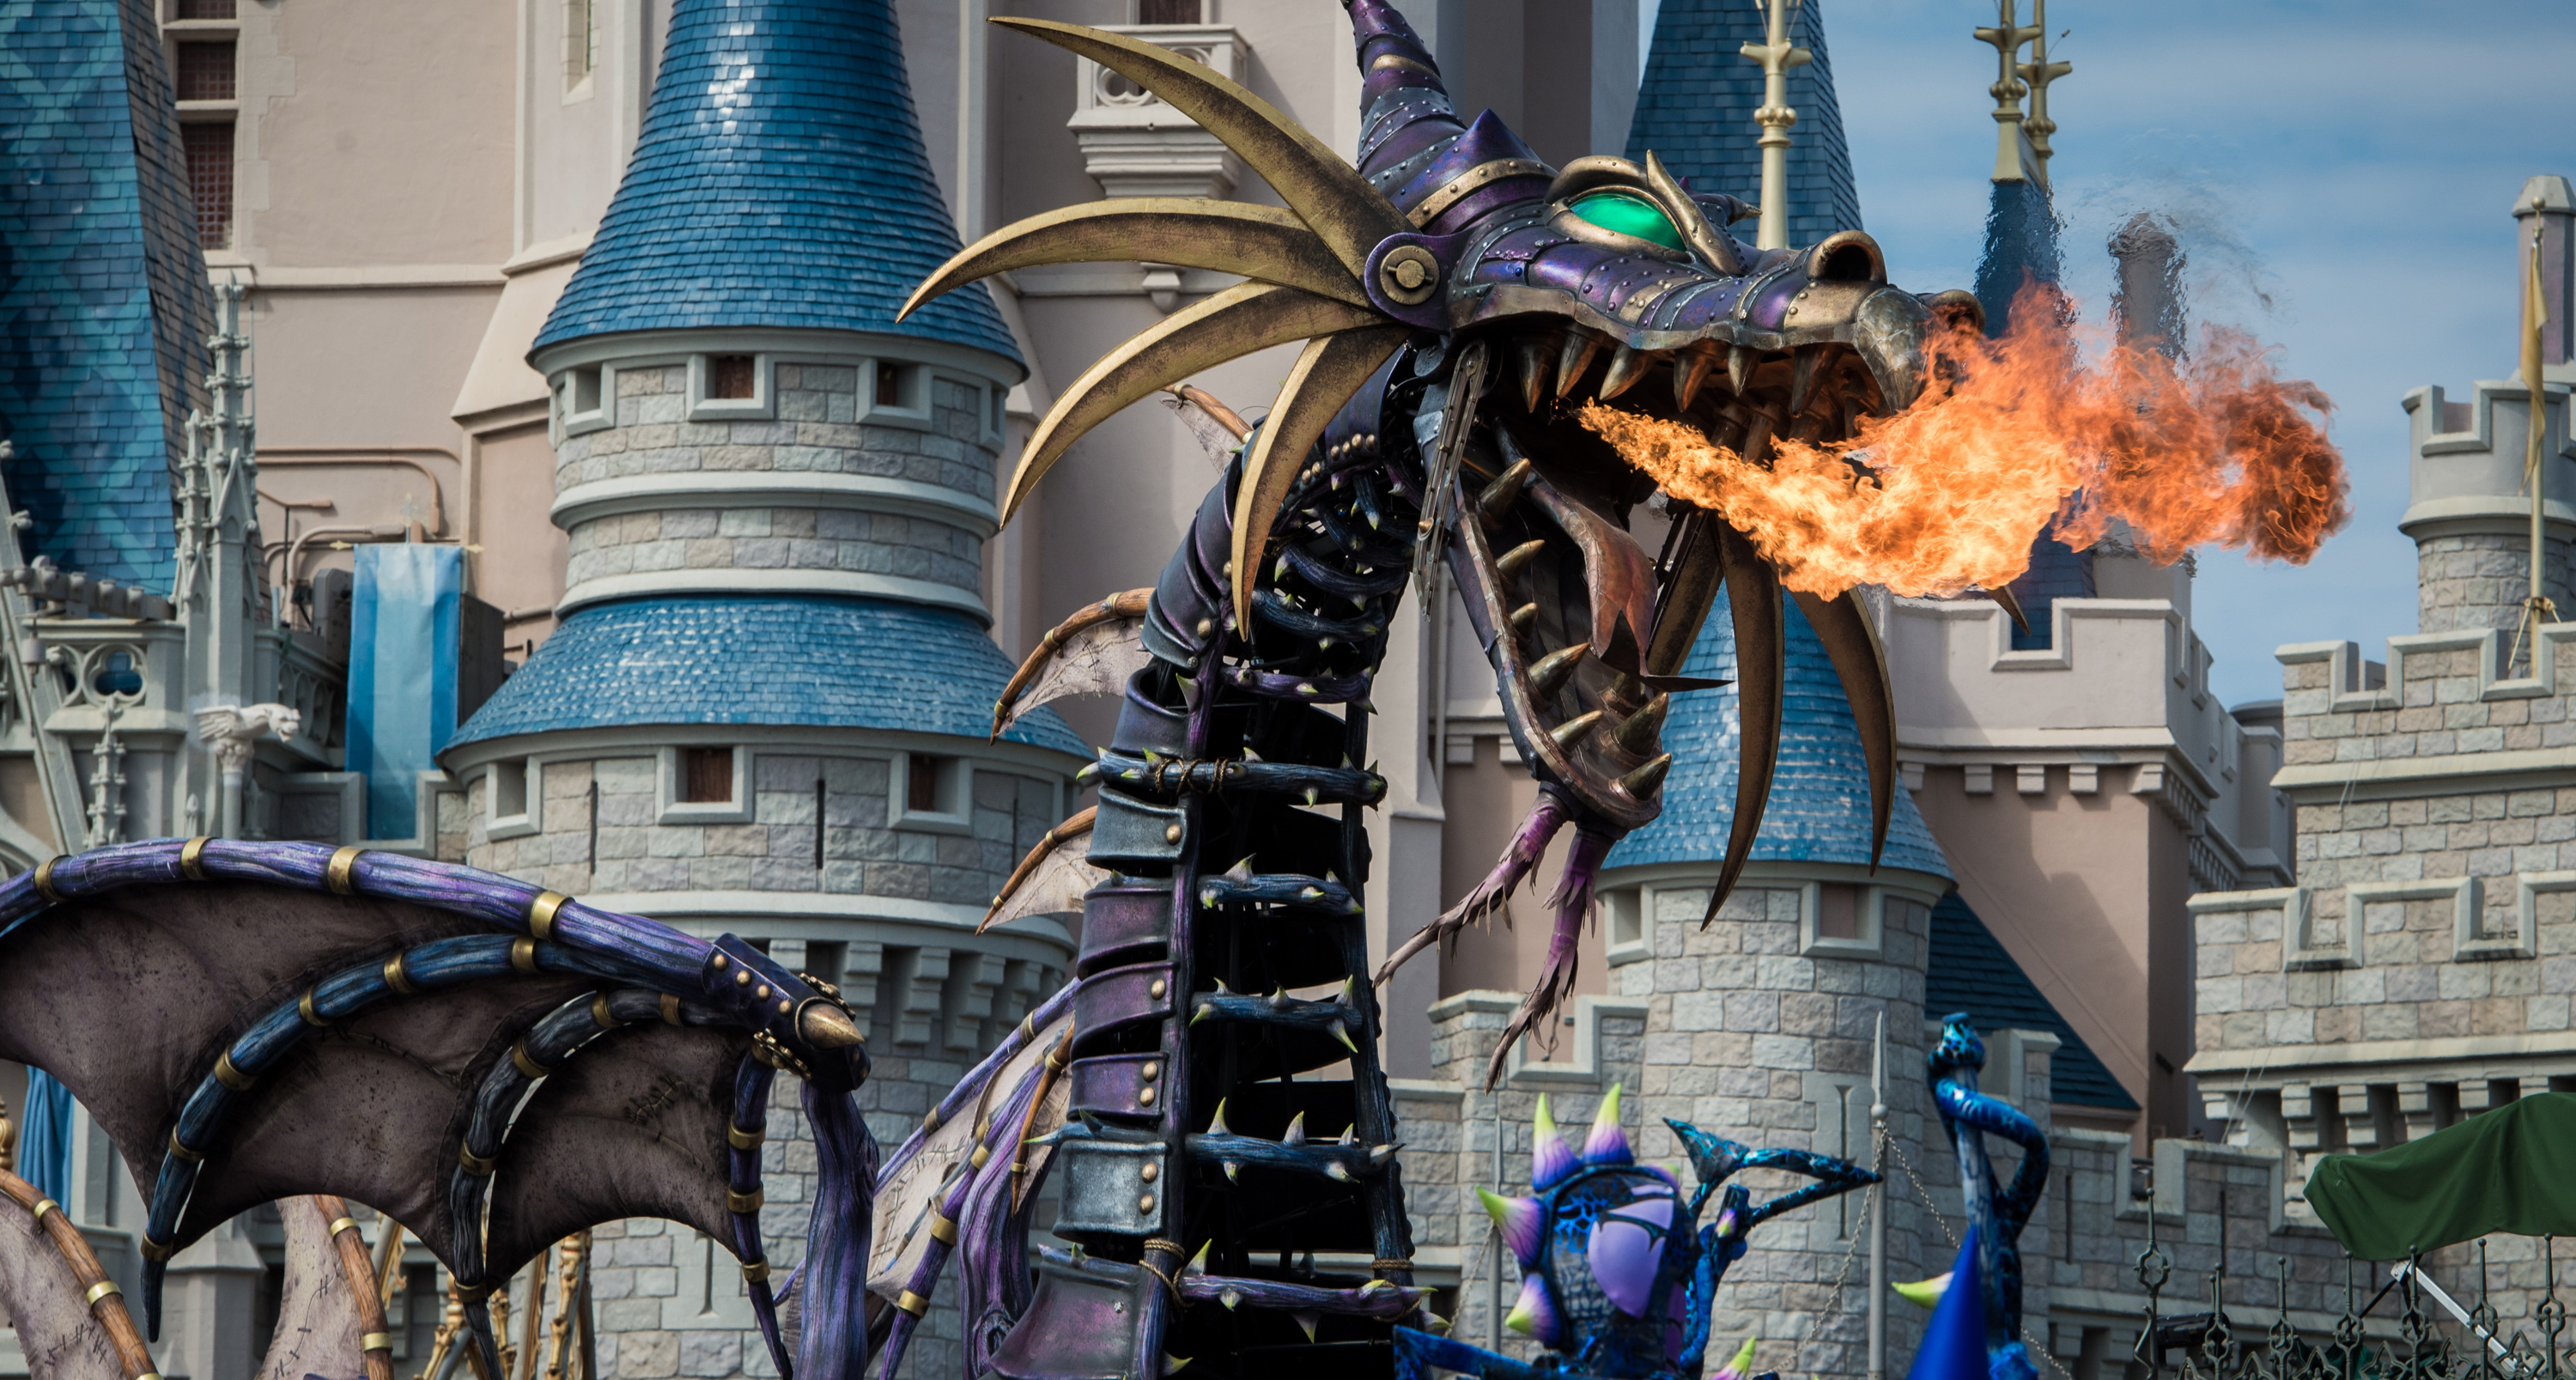 Dragon Maleficent breathing fire during the Disney Festival of Fantasy Parade at Magic Kingdom park